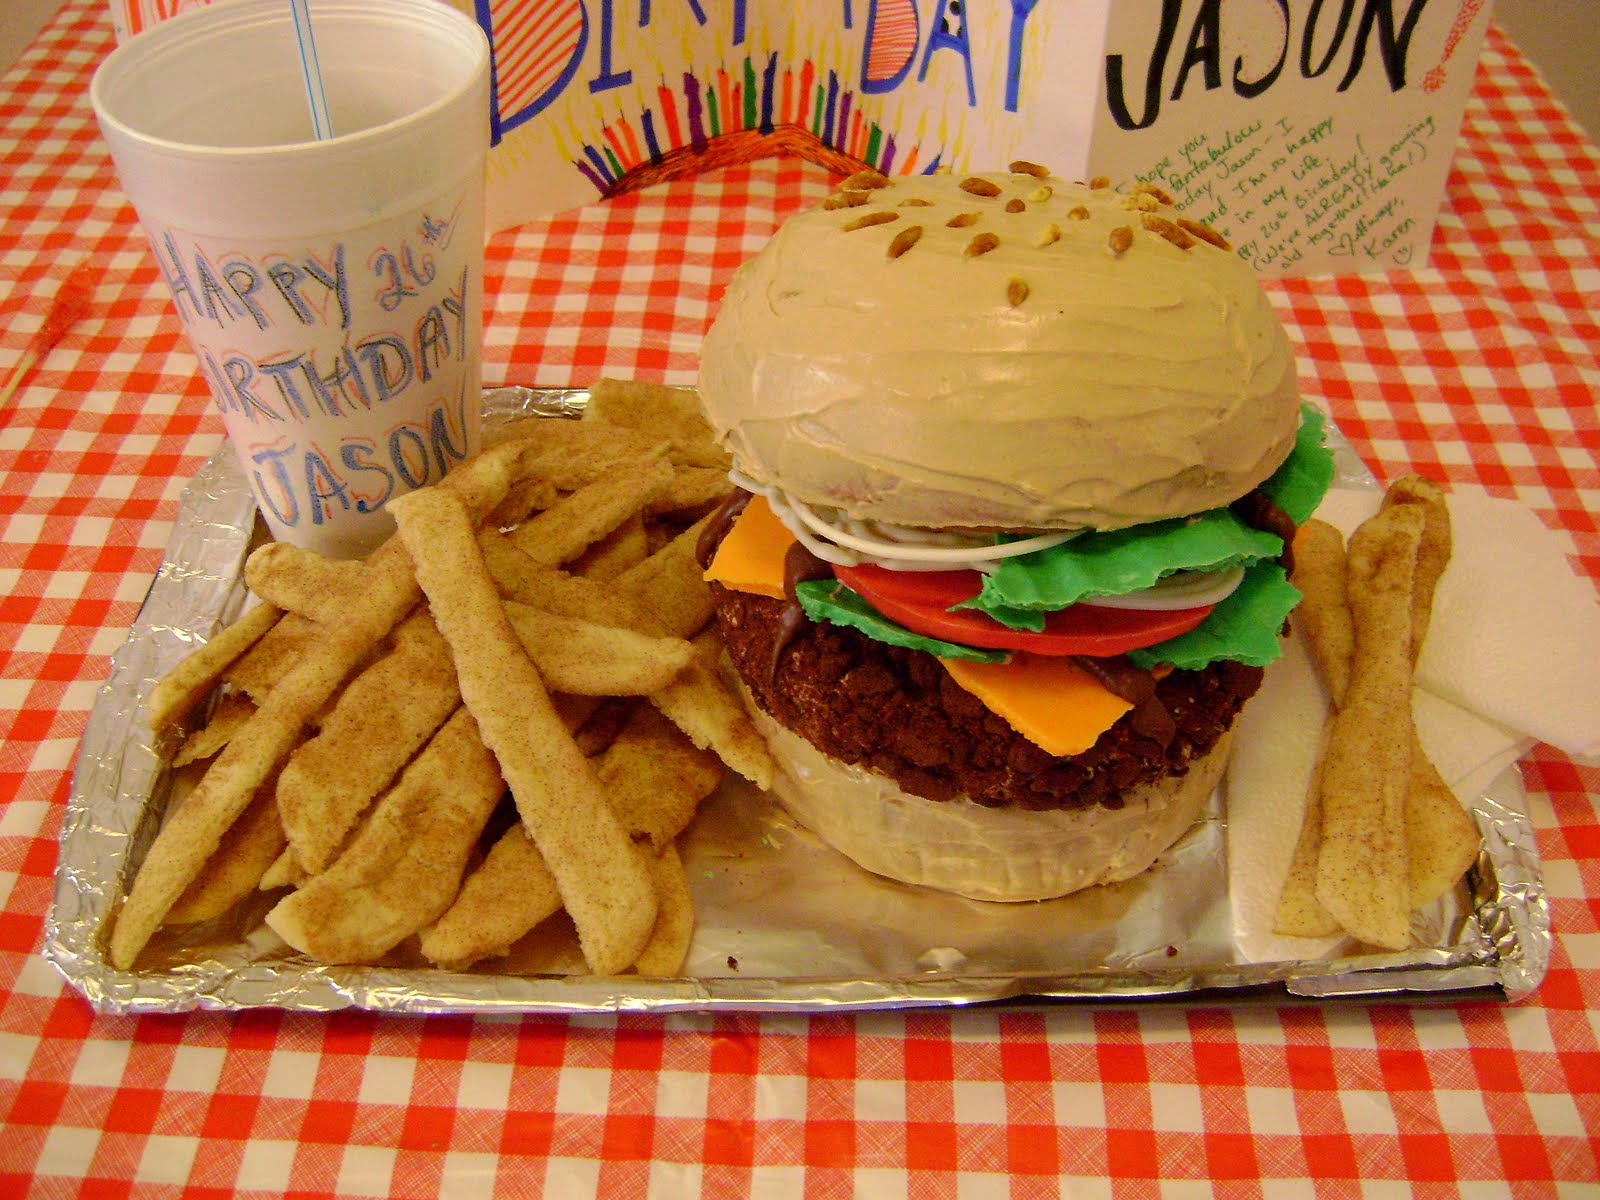 A Karen Cake Jasons Birthday Hamburger Cake